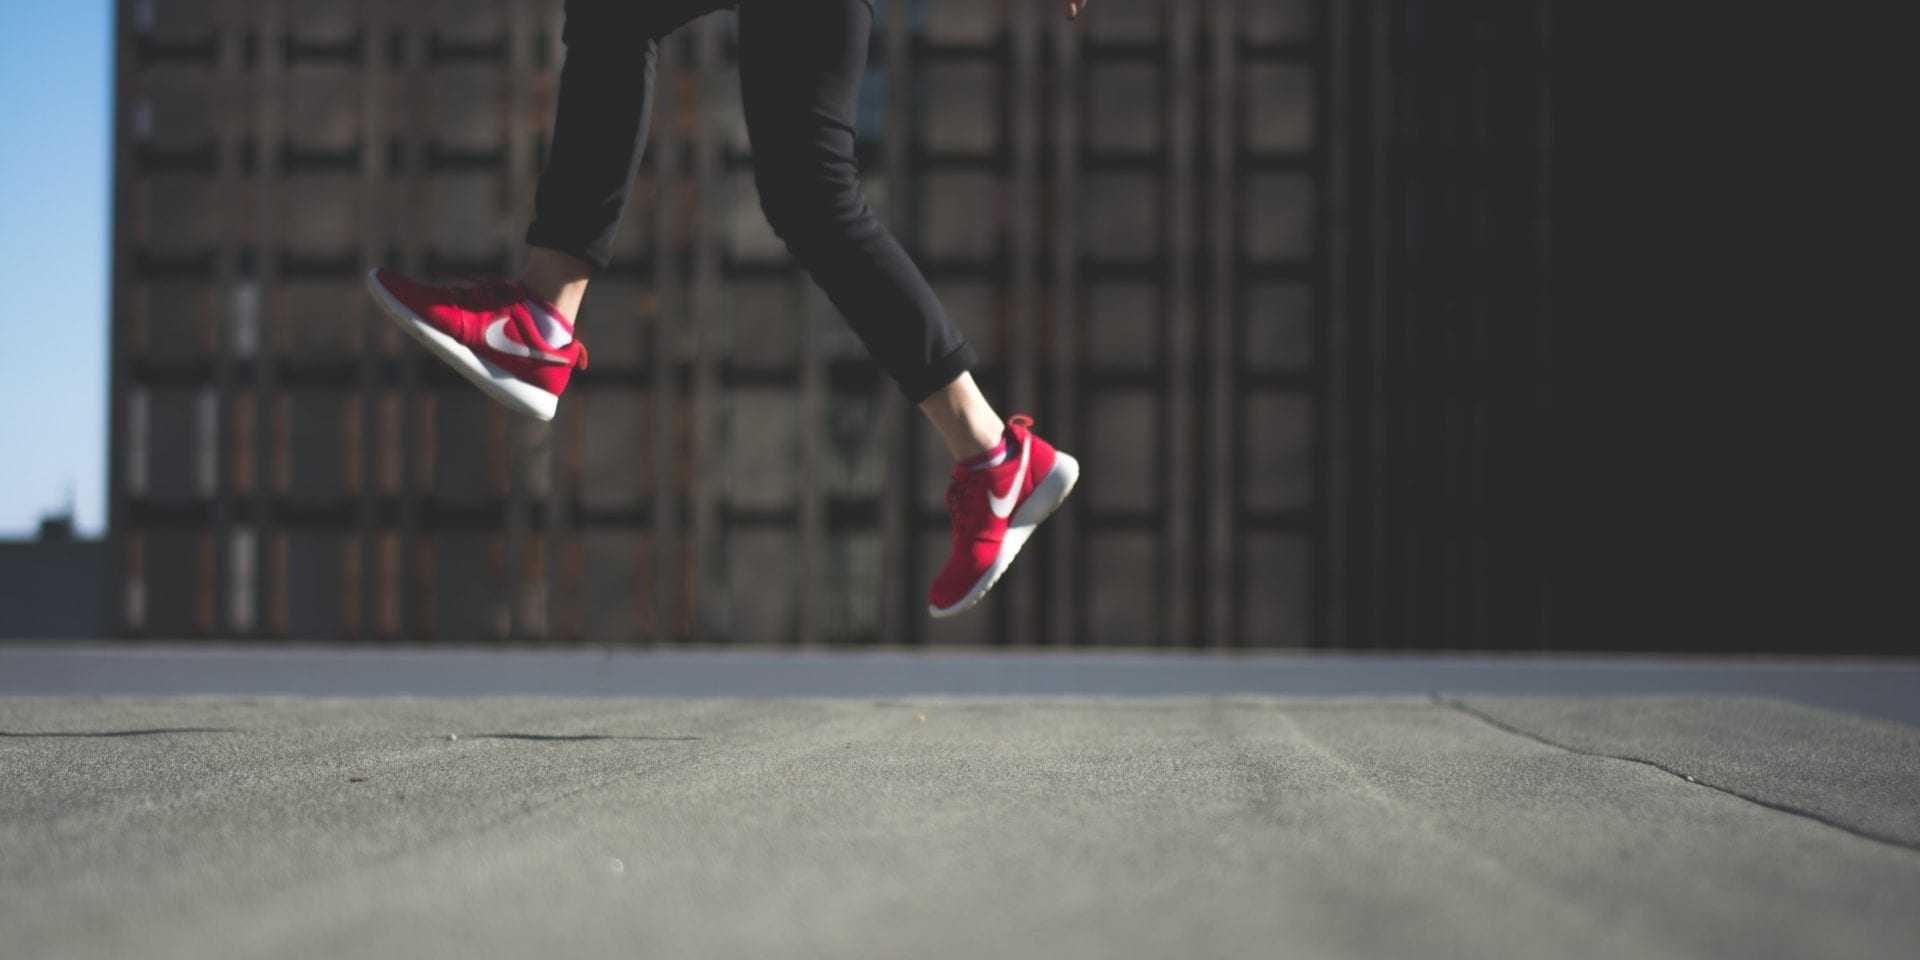 How to raise your profile at work: person wearing red Nike trainers jumping in front of a building